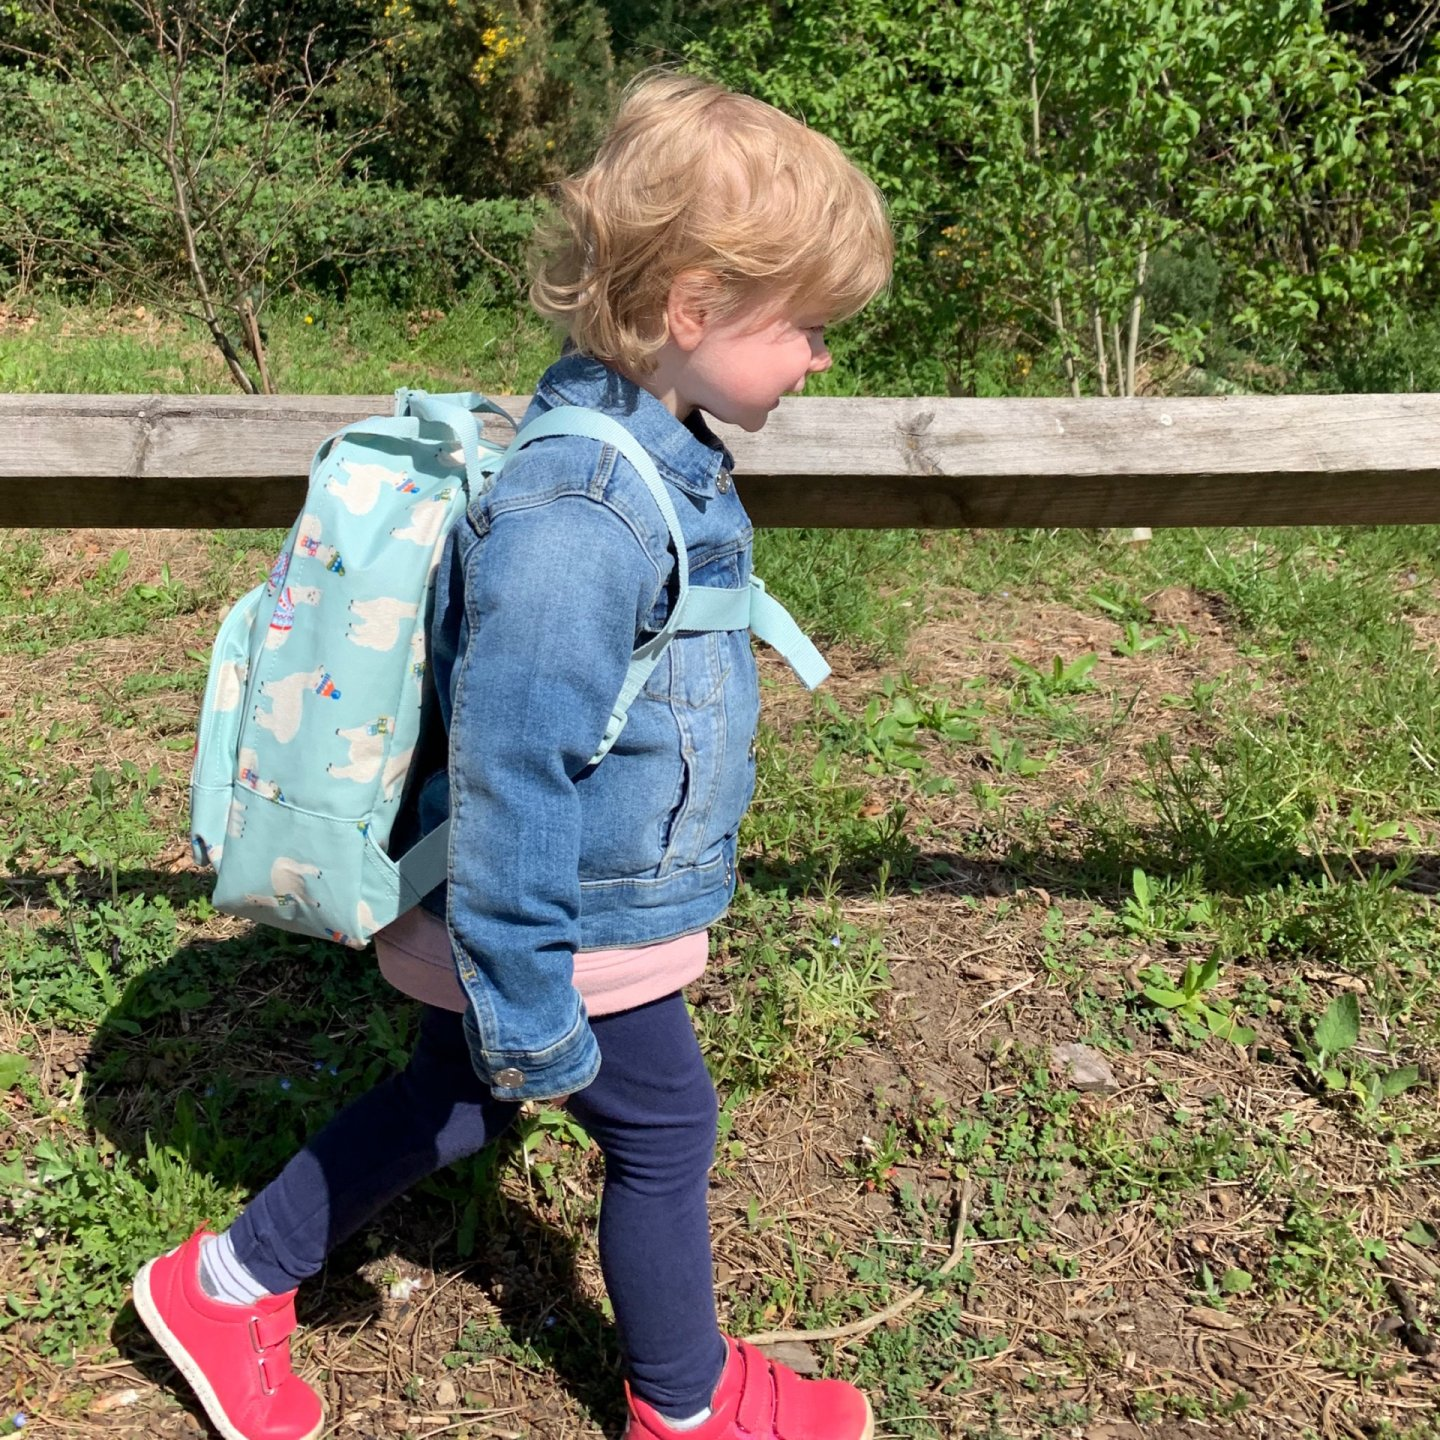 M walking home from her first day at preschool.